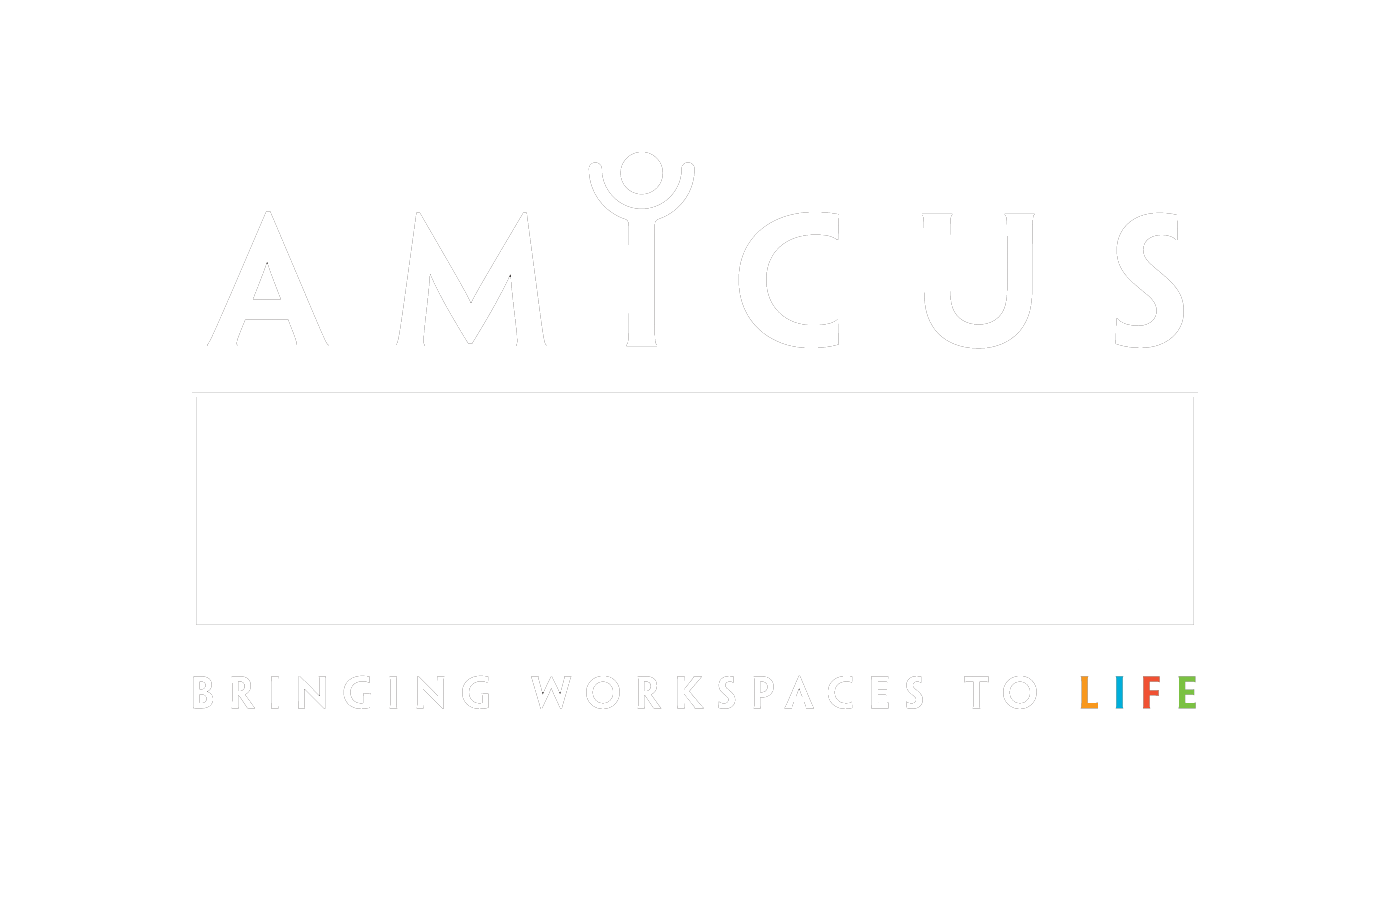 Amicus_CONSULTING_Just_Whitepsd-1.png